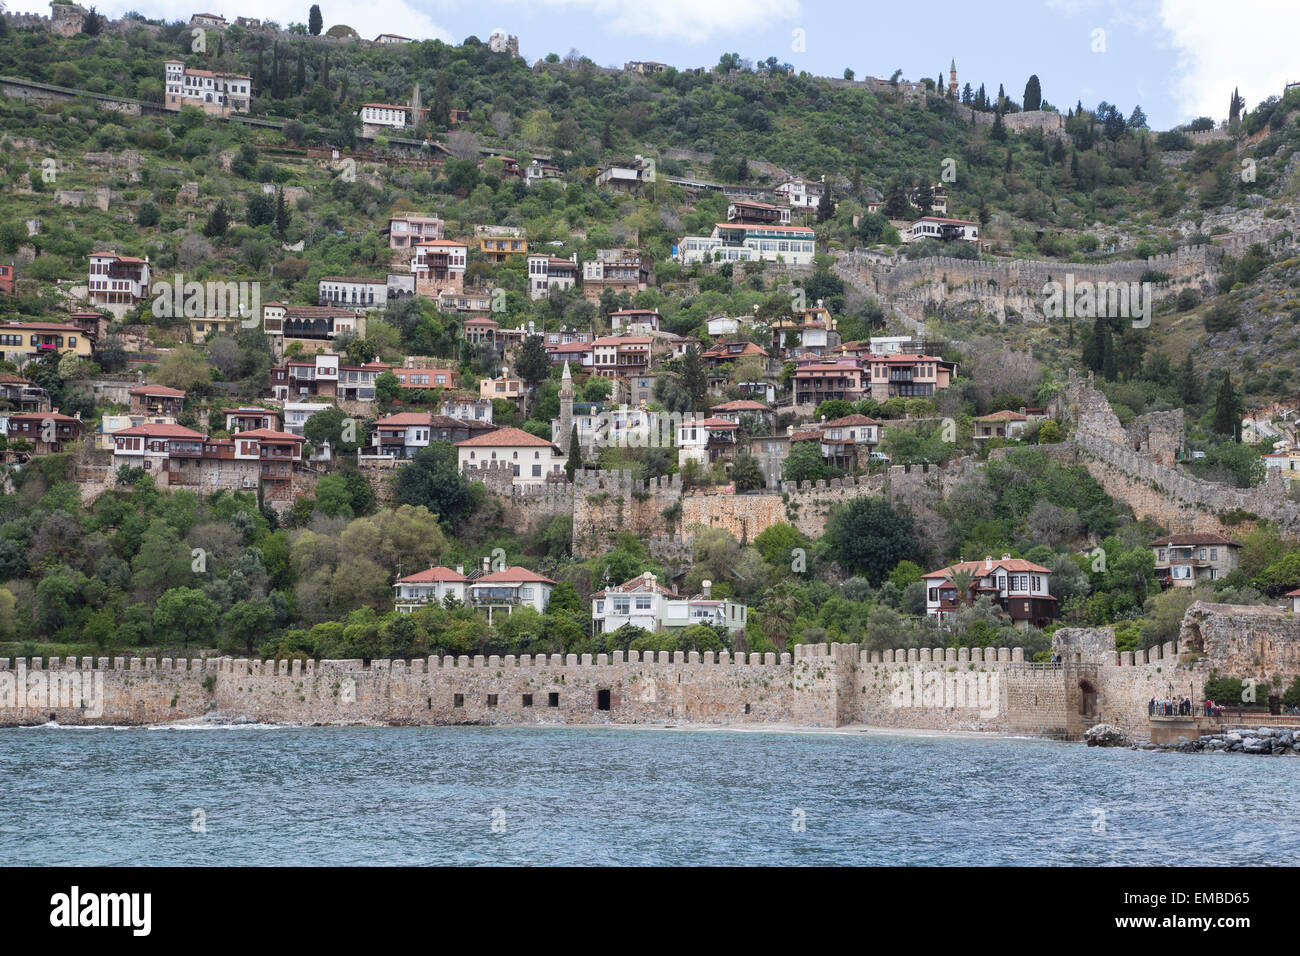 Alanya City in Turkey viewed from the harbor harbour and showing clearly the walls of the ancient fortress and battlements - Stock Image